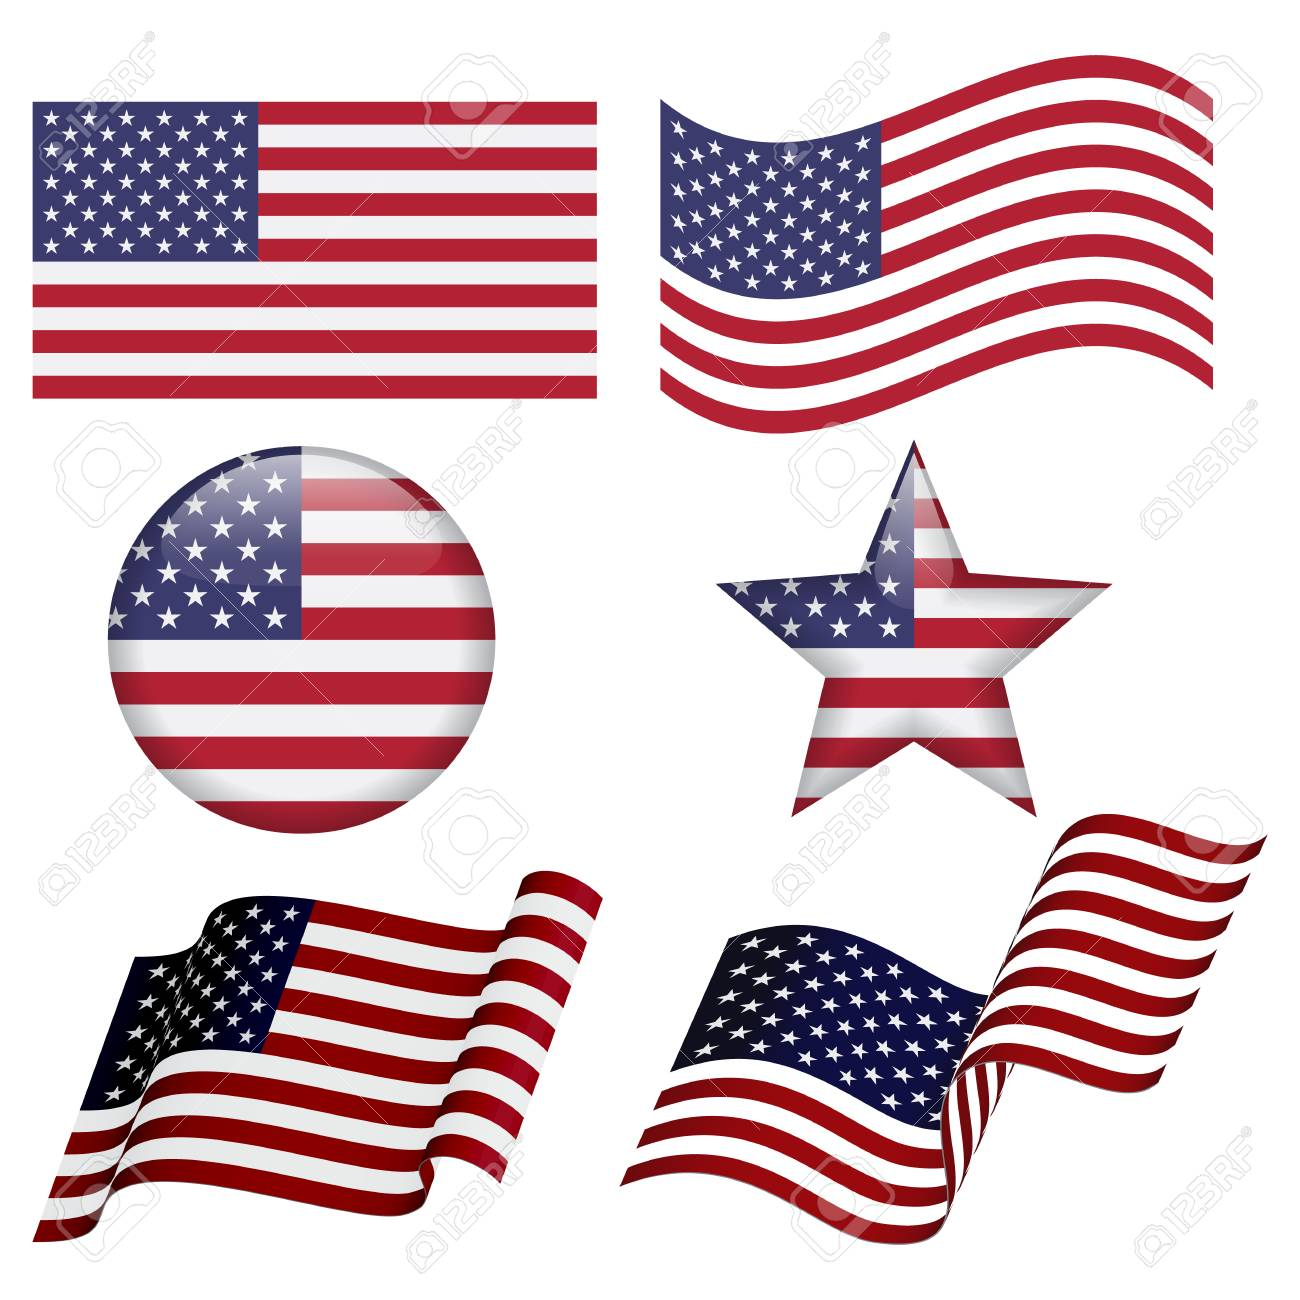 set of usa flag designs isolated on white background flat usa rh 123rf com US Flag Vector Graphic Texas Flag Vector